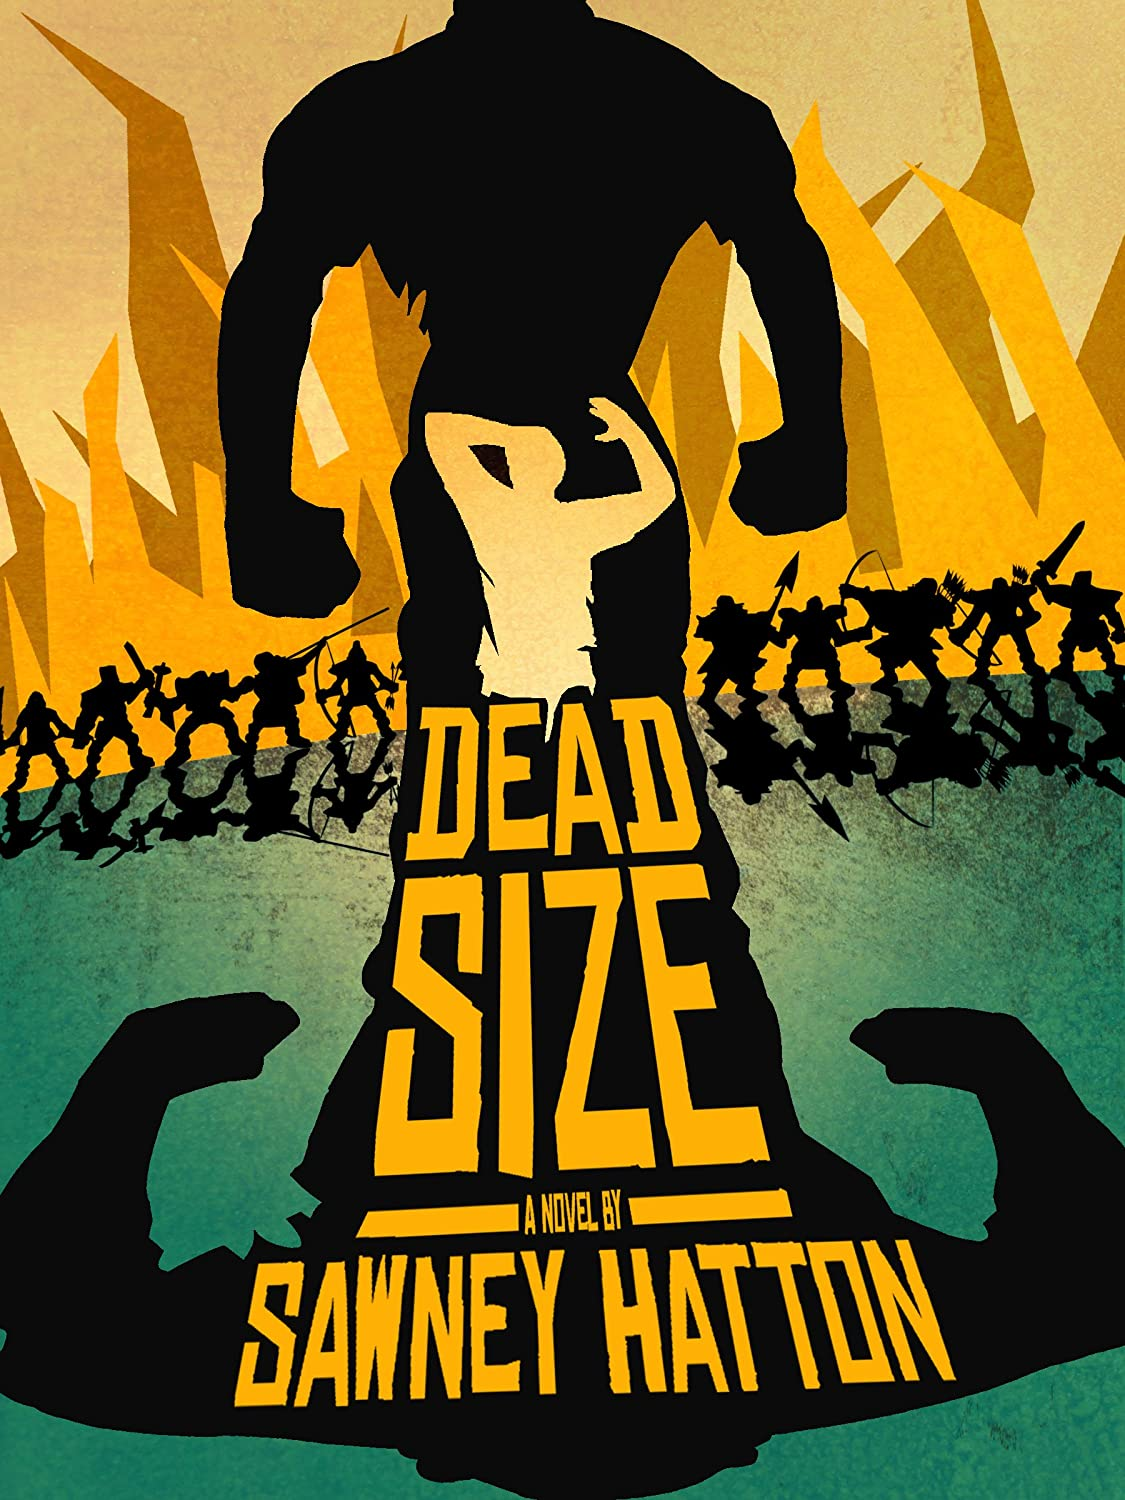 Dead Size by Sawney Hatton